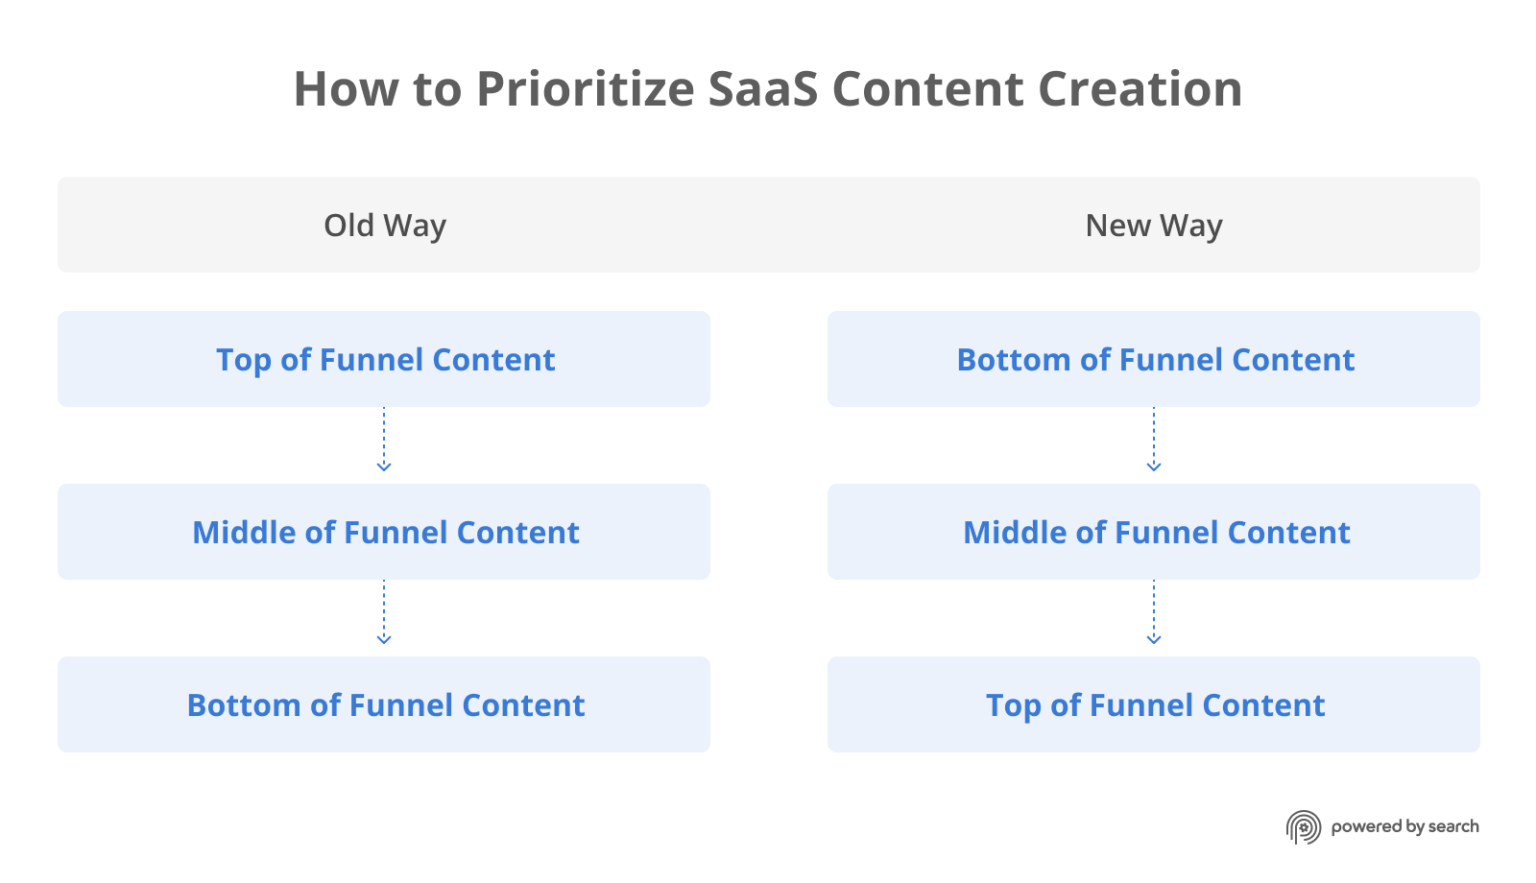 How to Prioritize SaaS Content Creation: Old Way - Top of Funnel, Middle of Funnel, Bottom of Funnel. New way: Bottom, Middle, Top.